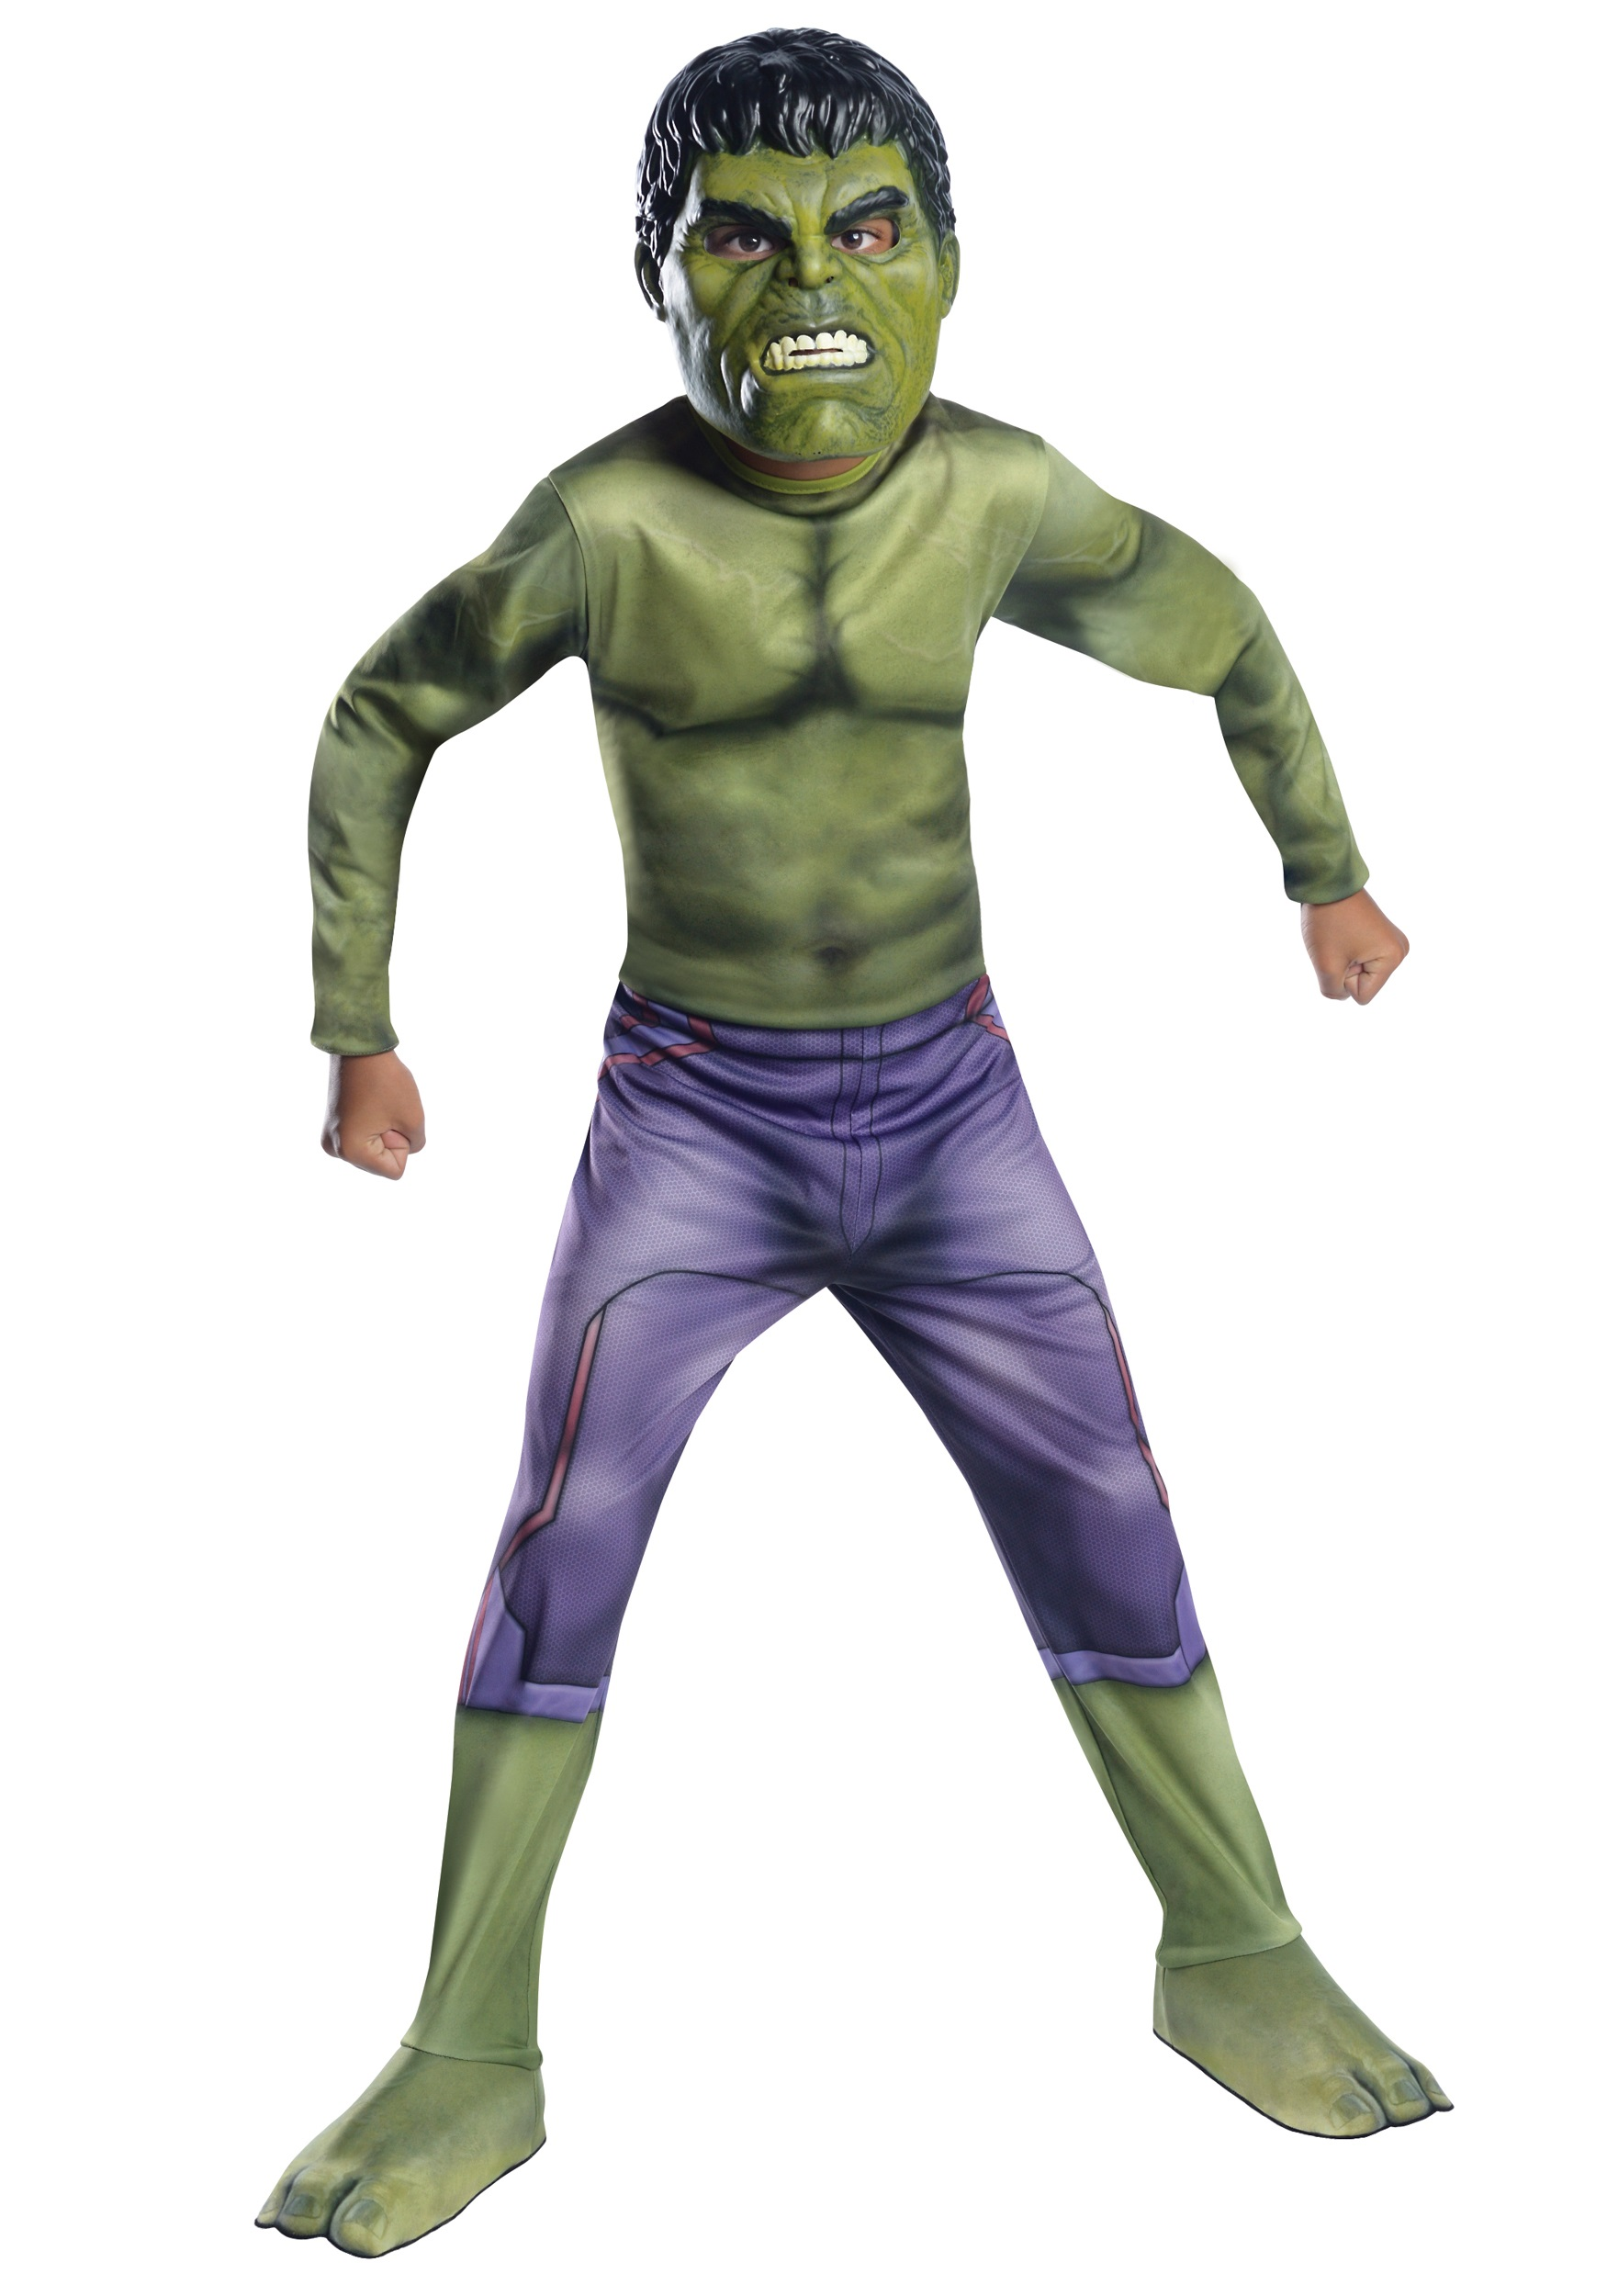 Child The Hulk Avengers 2 Costume  sc 1 st  Halloween Costumes & Incredible Hulk Costumes - HalloweenCostumes.com